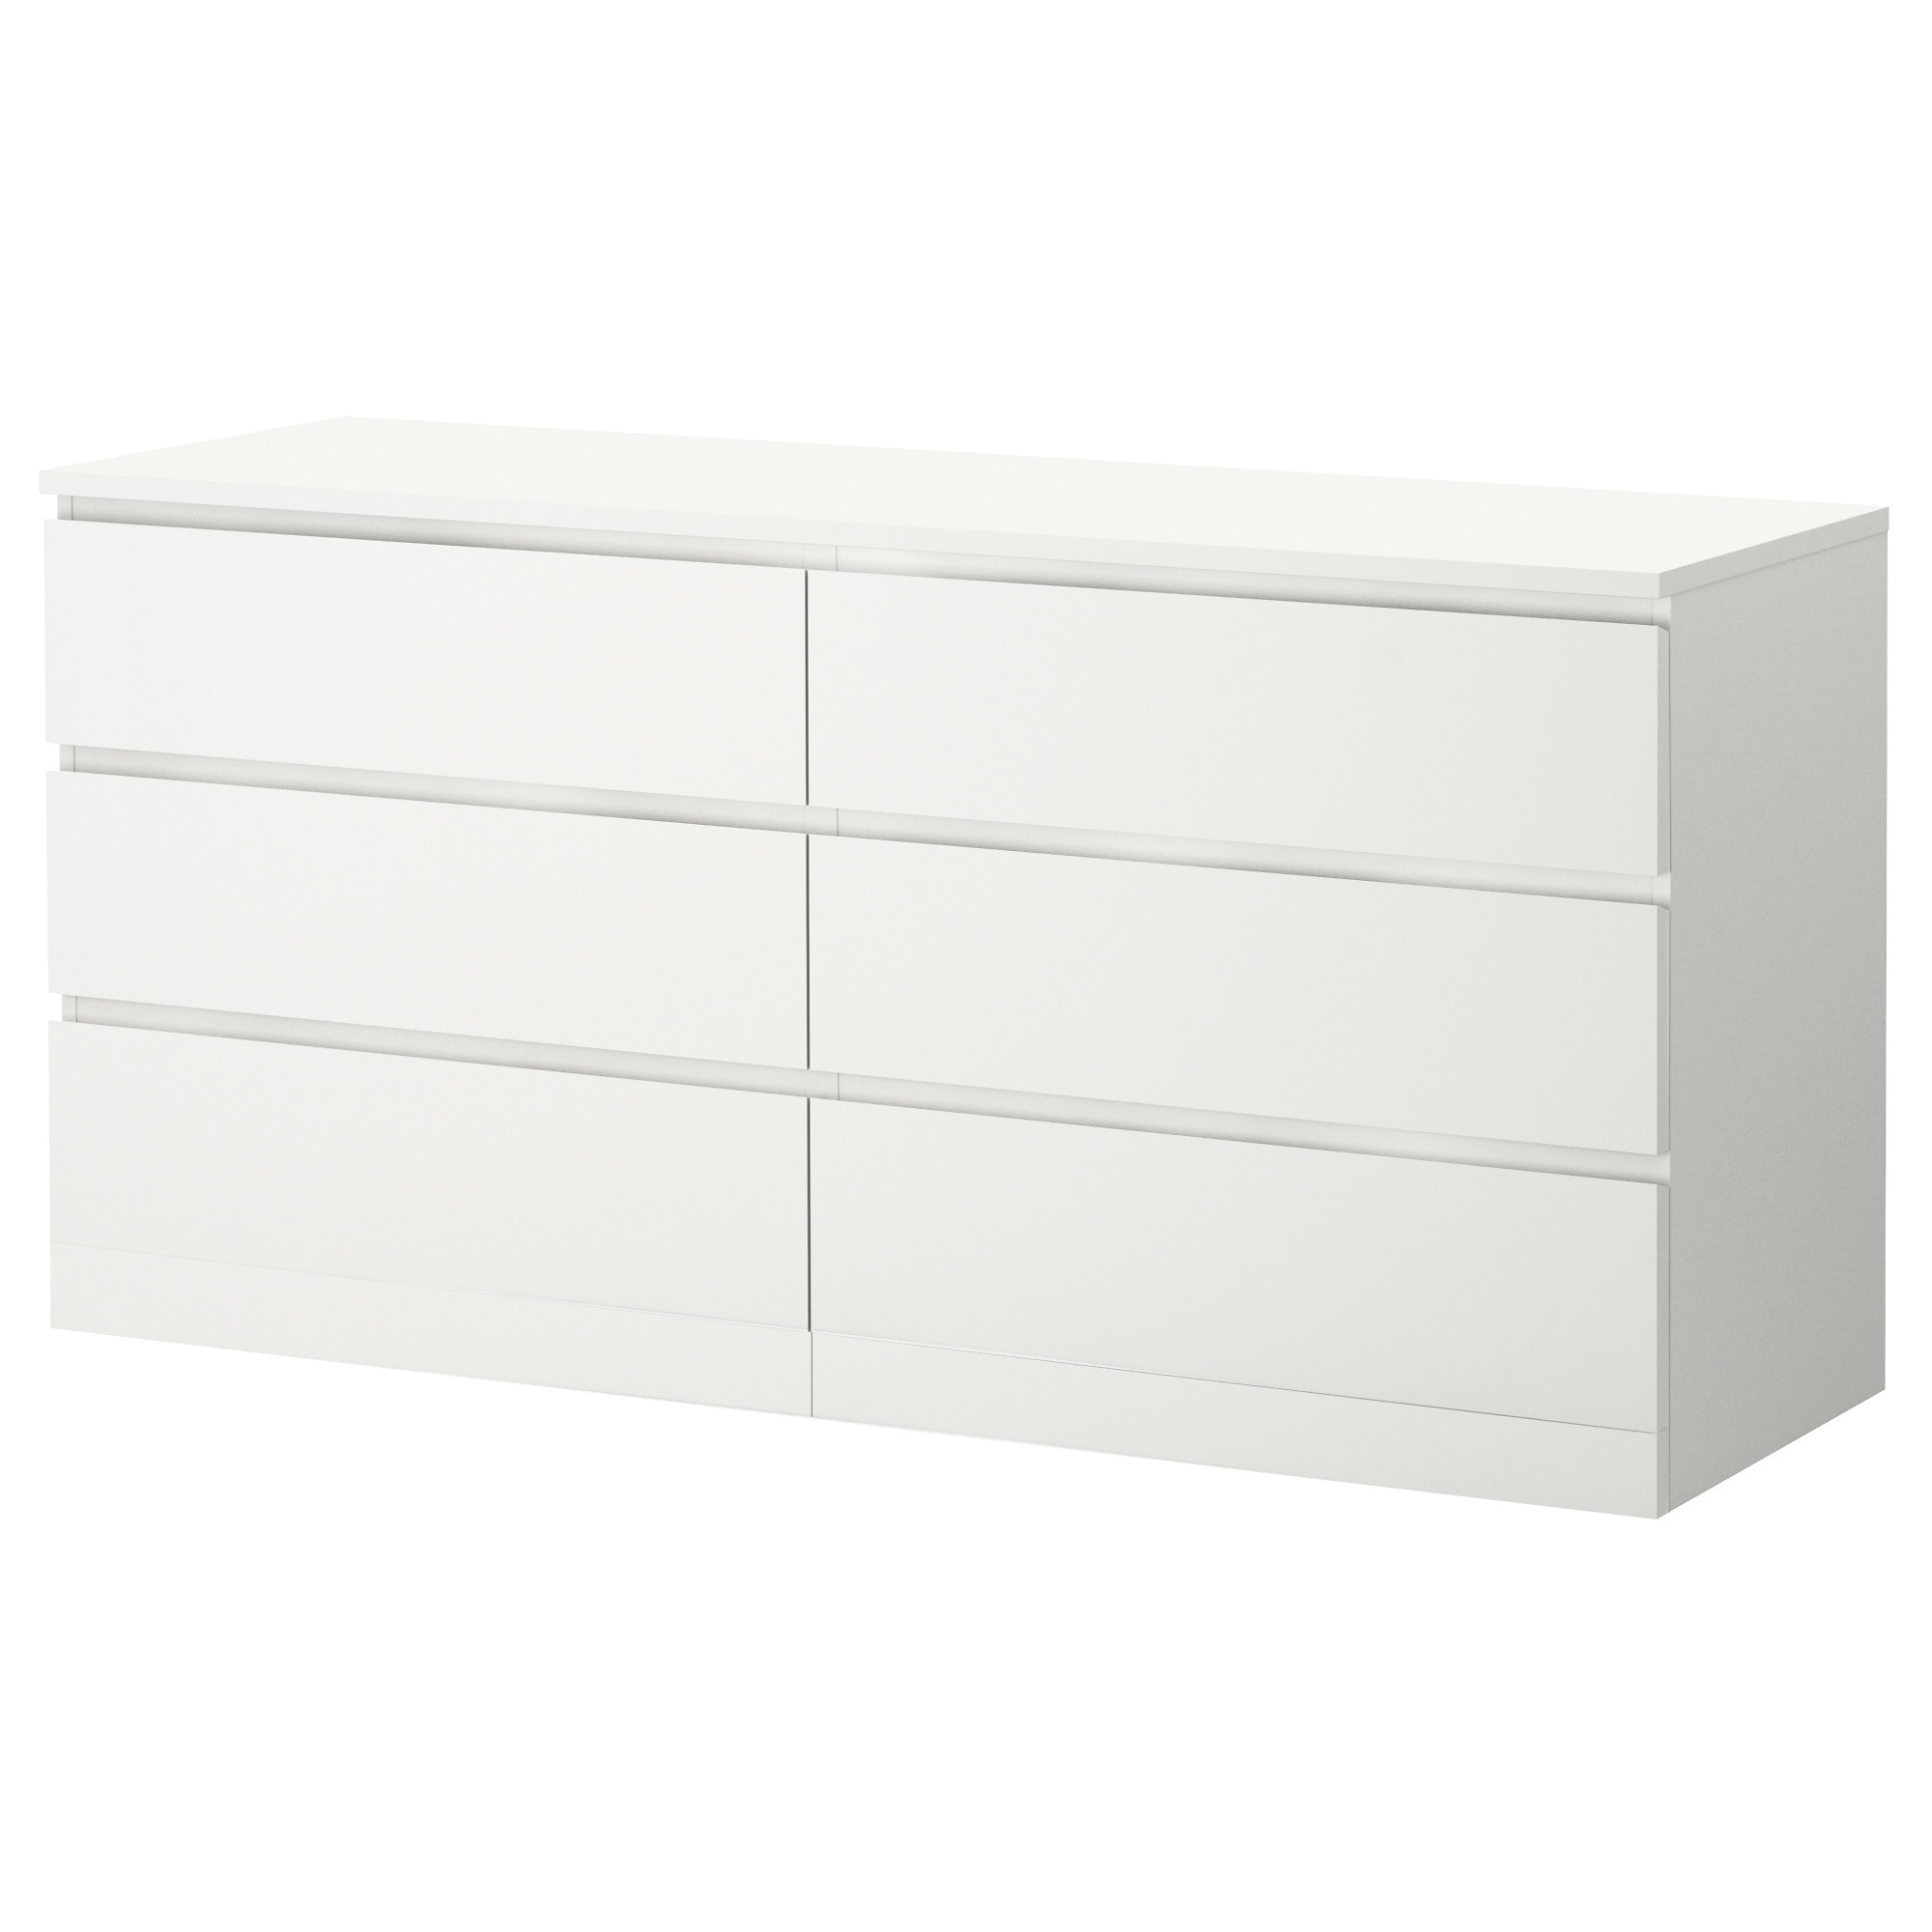 6 Drawer Dresser Malm White